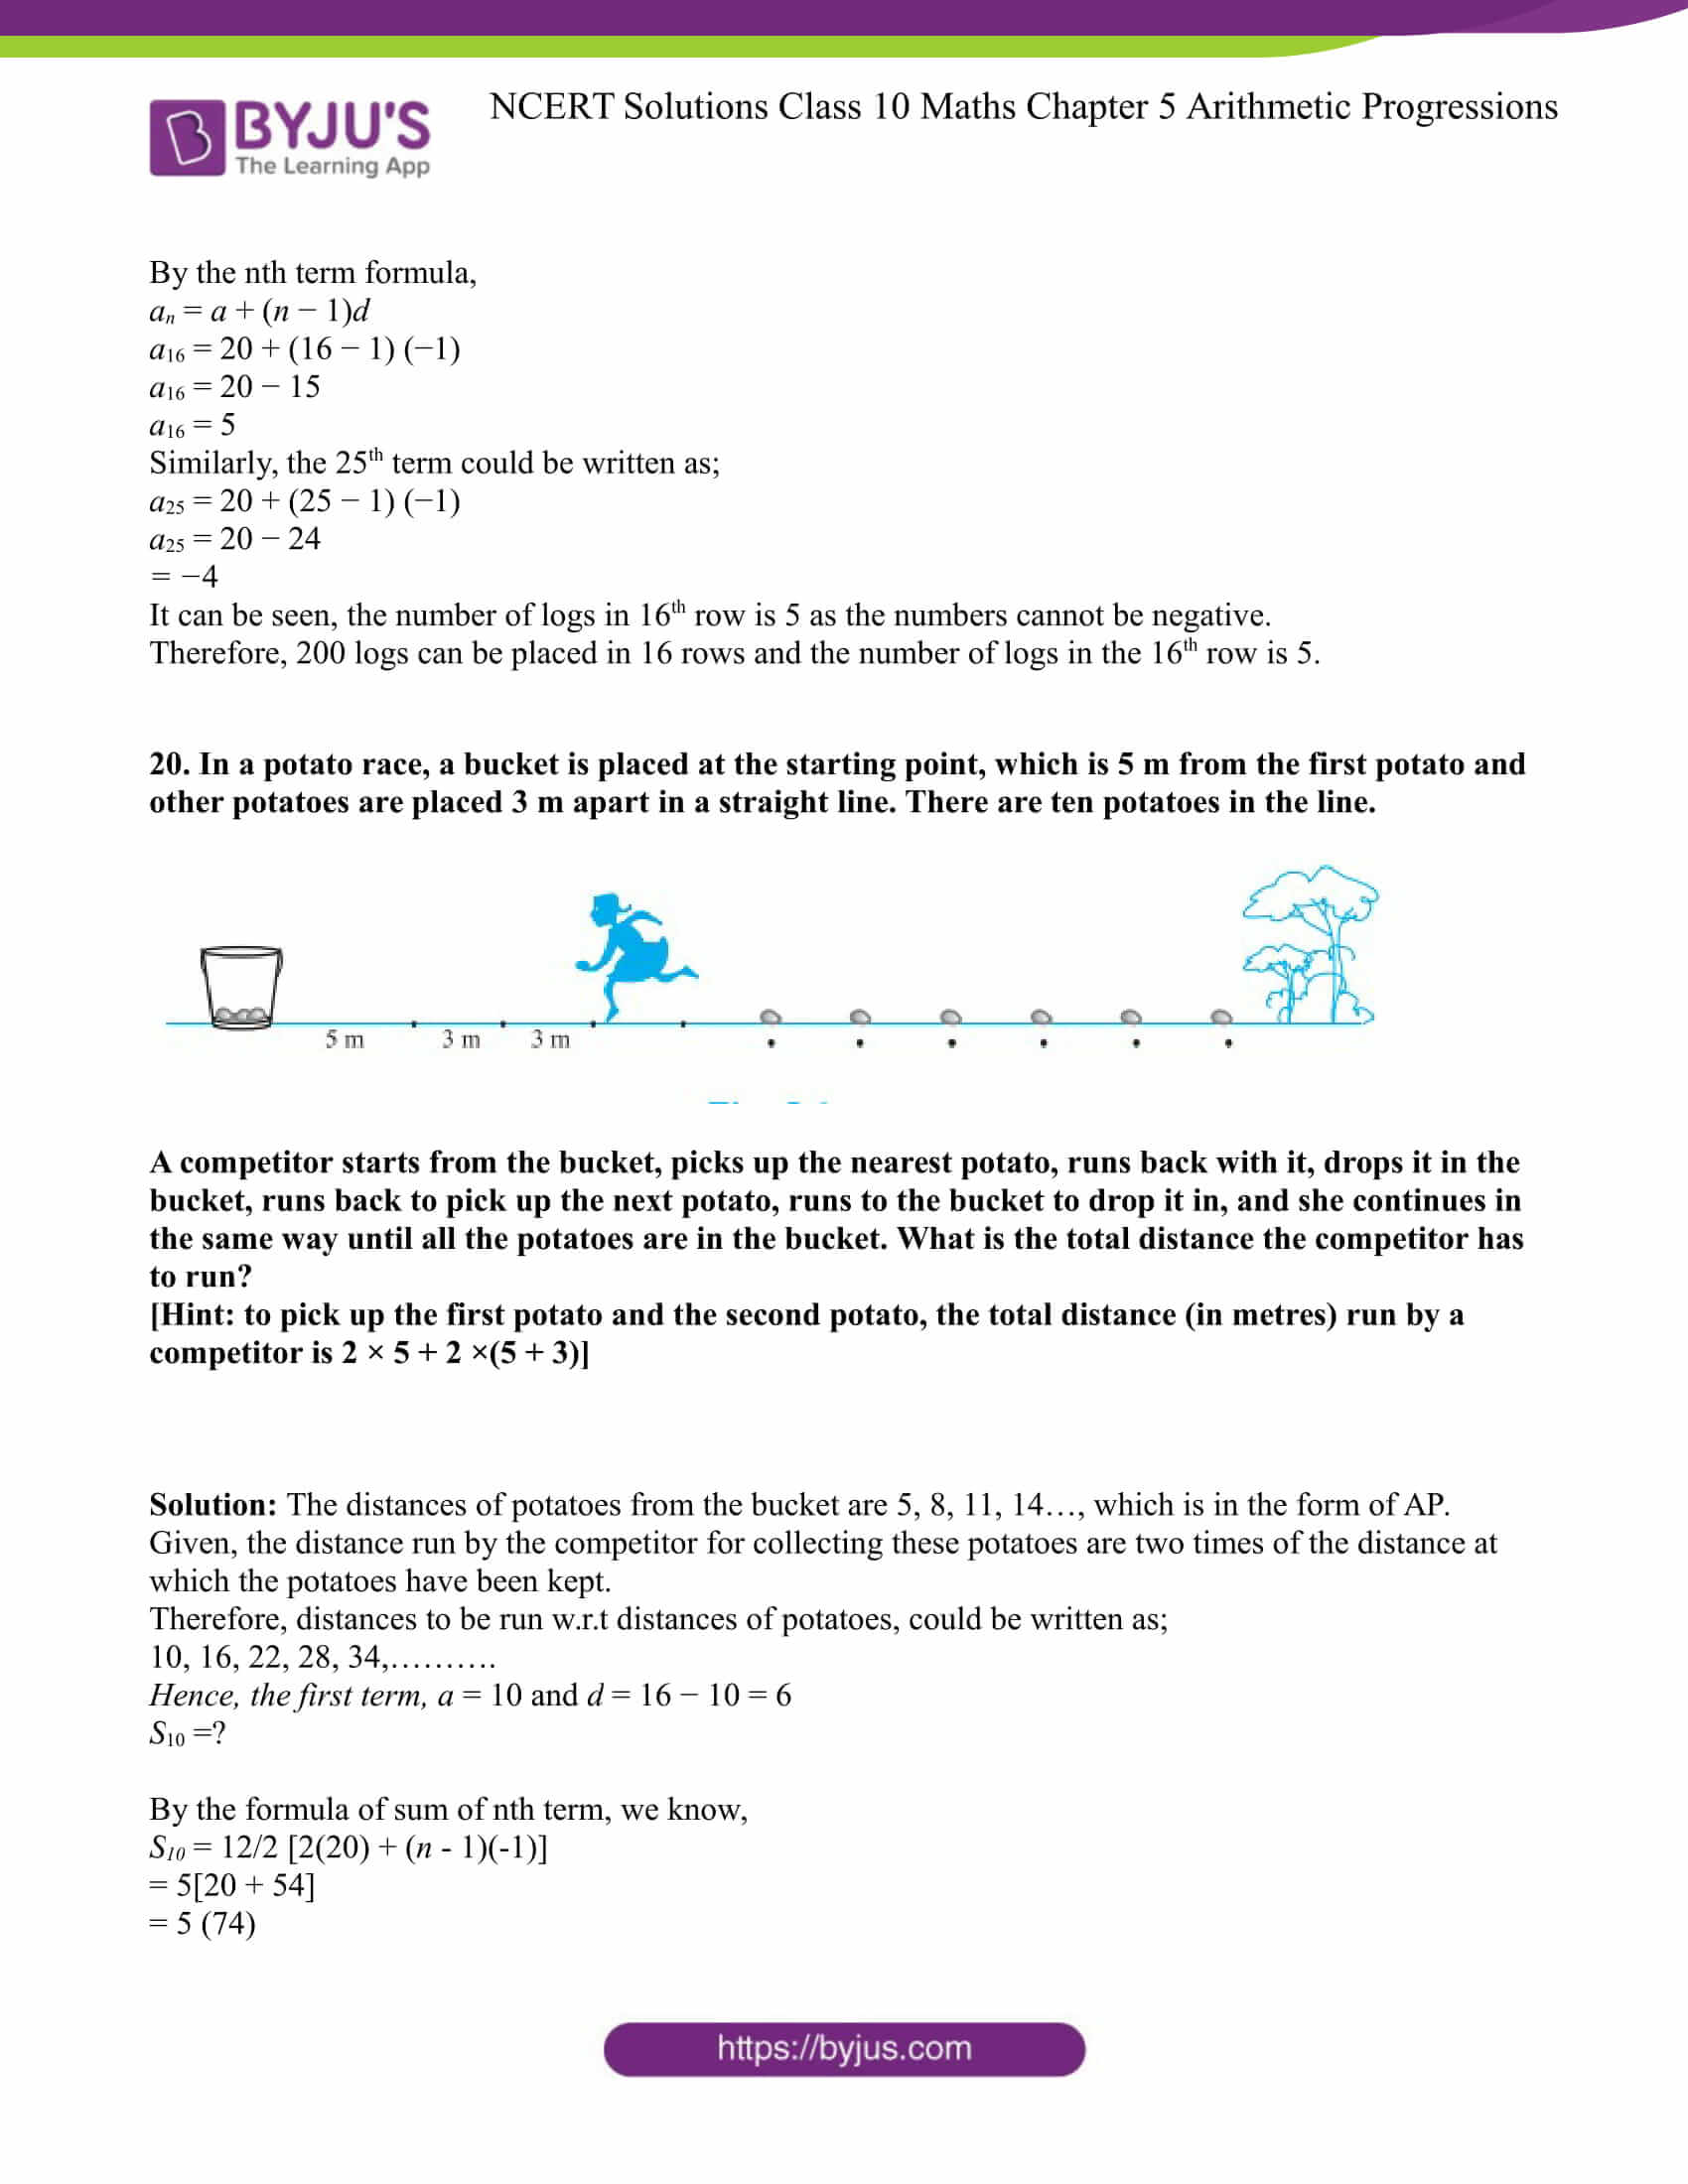 NCERT Solution for CBSE class 10 Maths Chapter 5 Arithmetic Progressions Excercise 5.3 Part 17